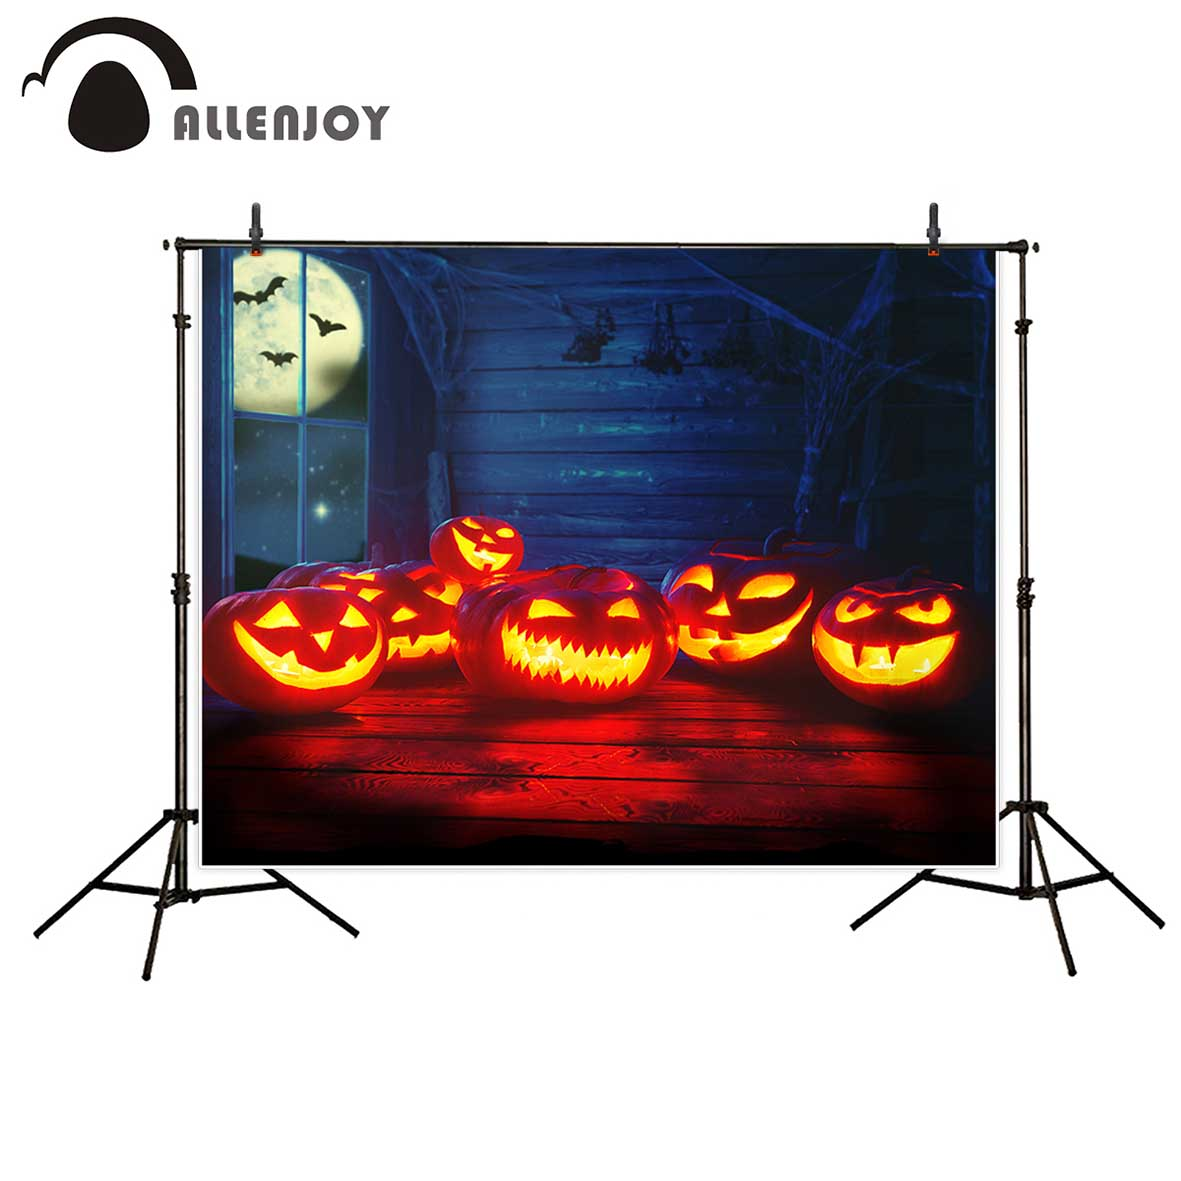 Allenjoy photographic background Moon haunted house horror pumpkin light backdrop photocall professional custom vinyl background